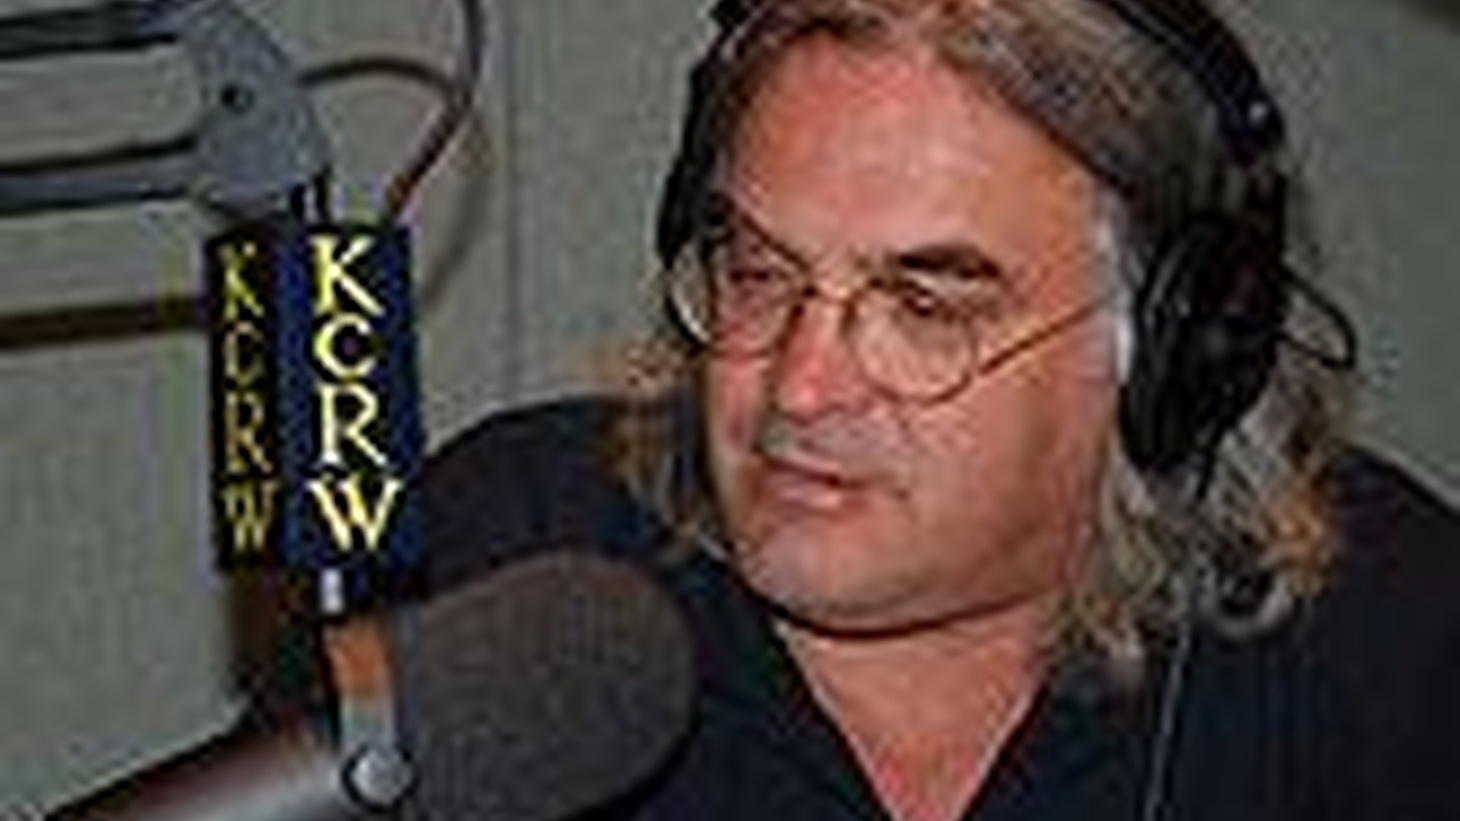 Writer-director-producer Paul Greengrass (Bloody Sunday, United 93, The Bourne Supremacy) whose latest film is The Bourne Ultimatum.